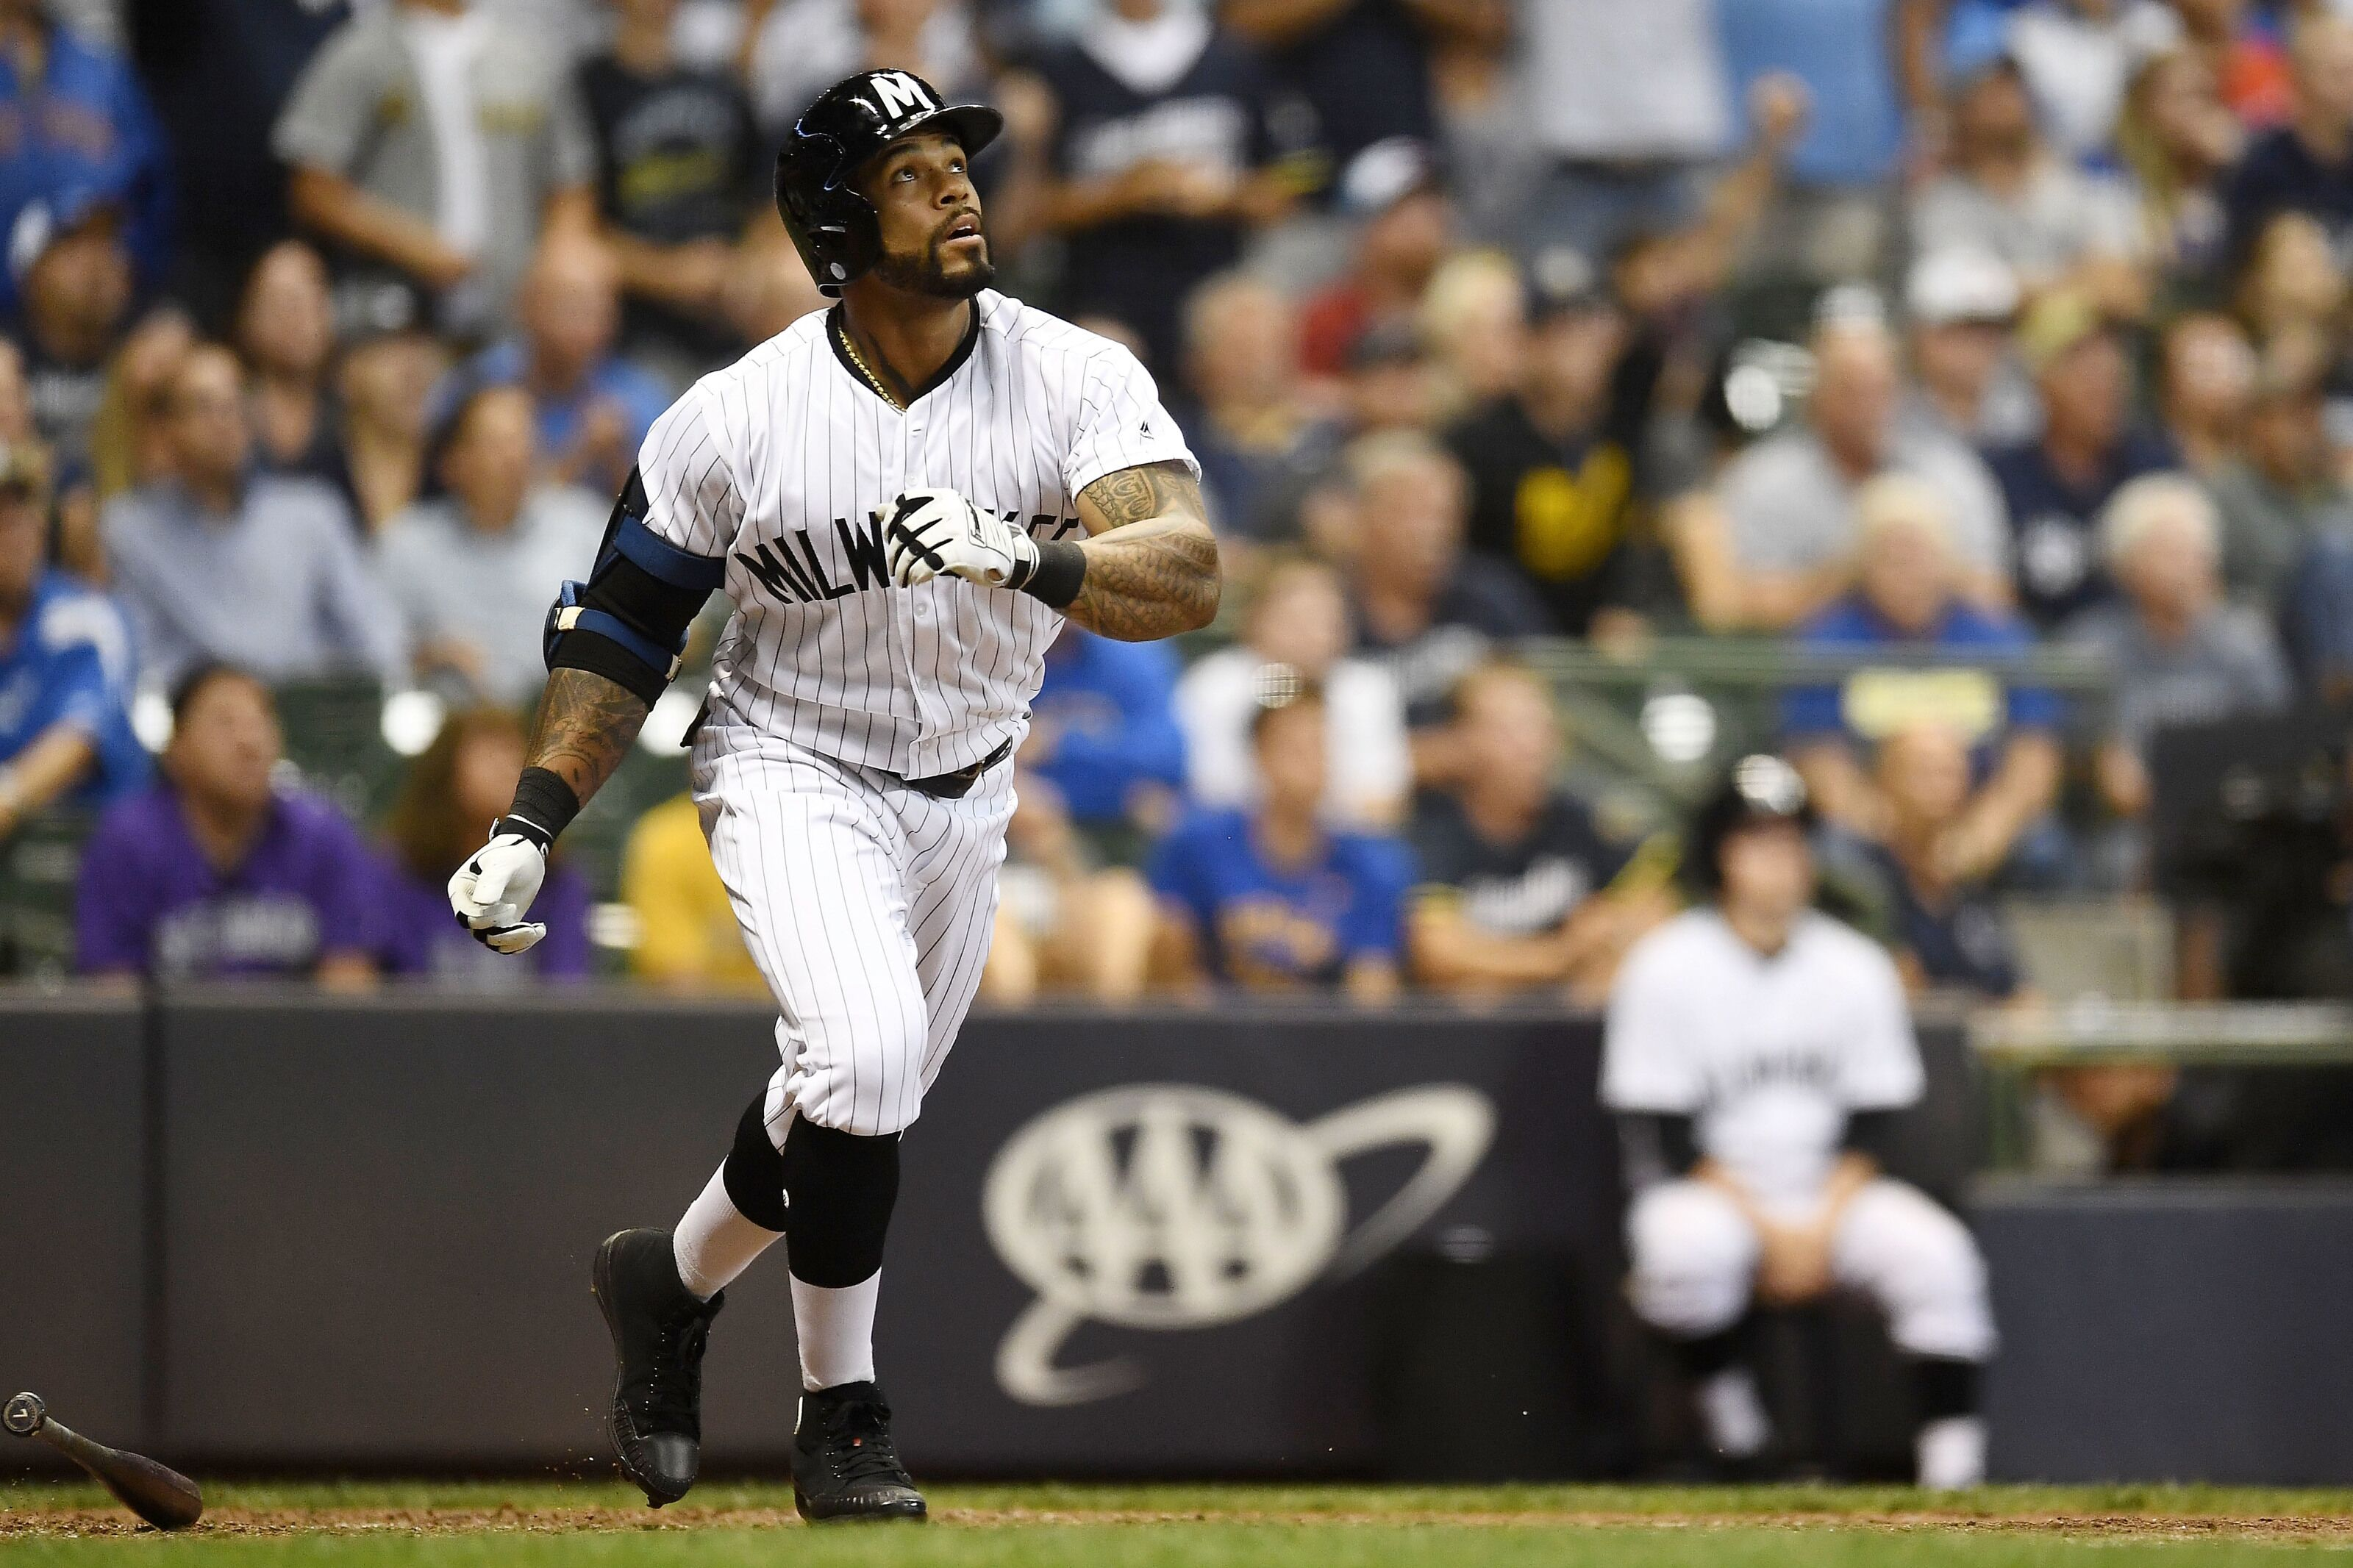 Milwaukee Brewers: Could The Marlins Be A Trade Fit For Eric Thames?